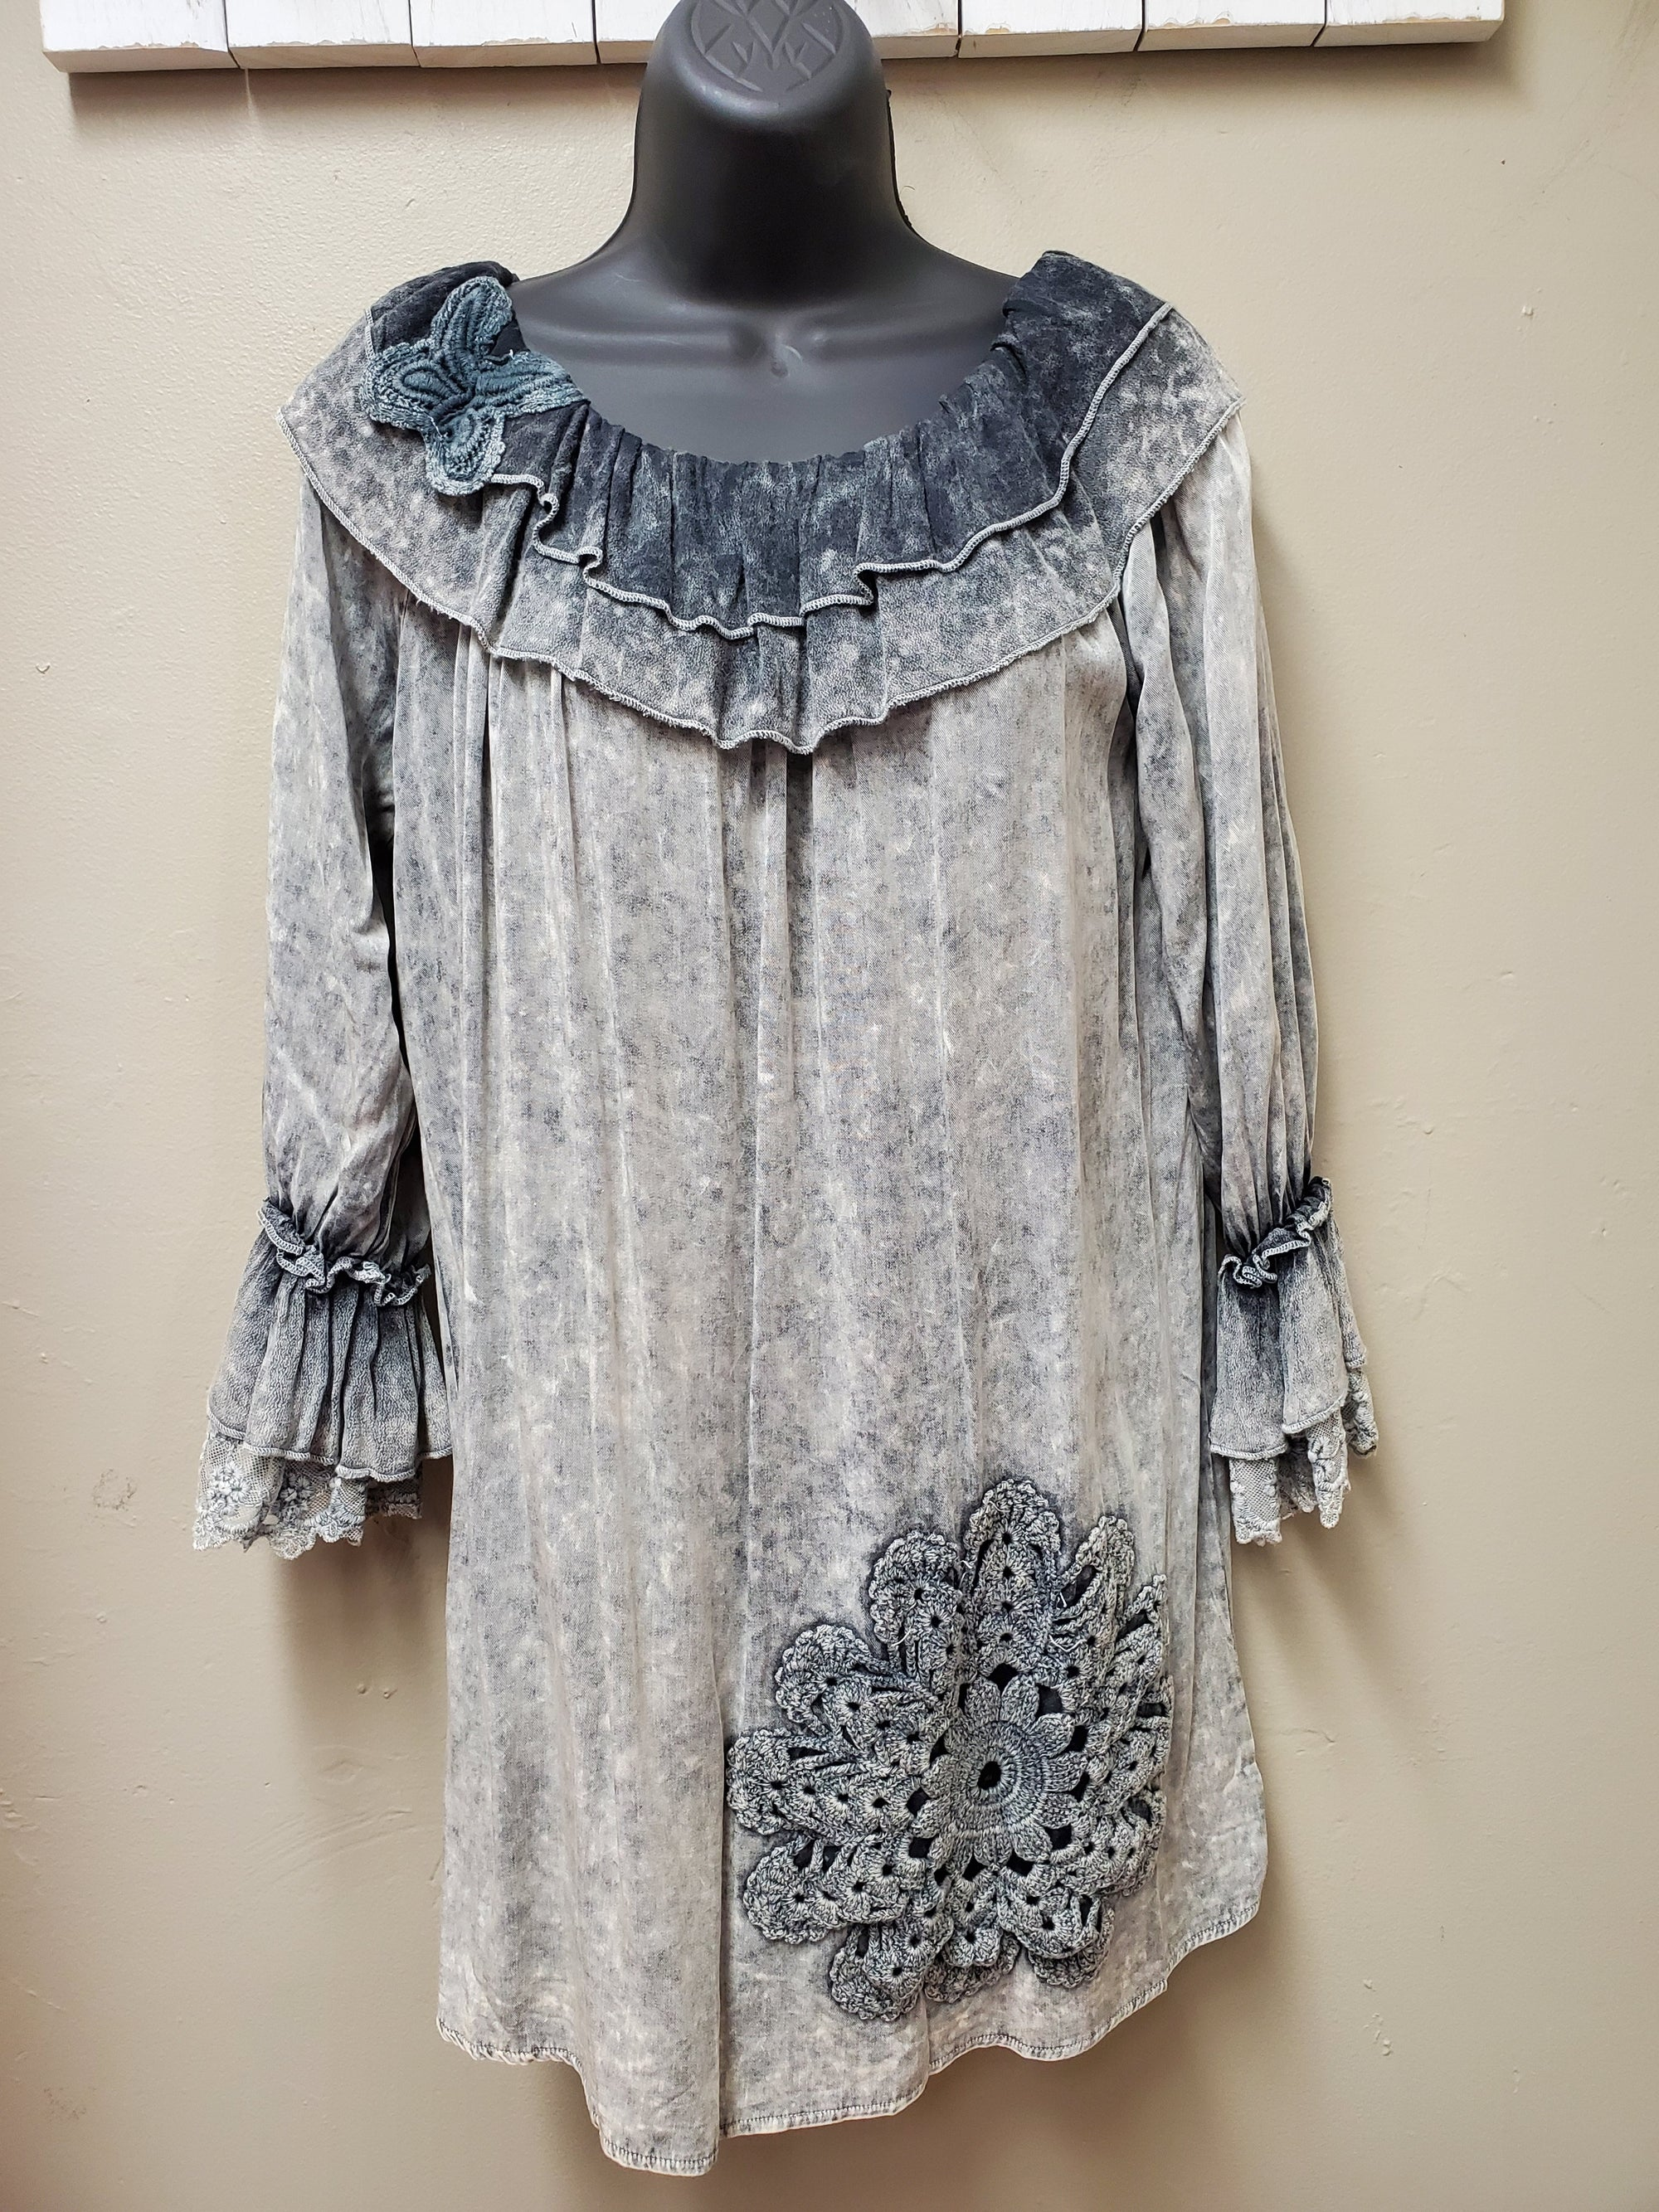 Antiqued Grey Top with Ruffle Neckline & Sleeve with Lace Cuff - You-nique Bou-tique